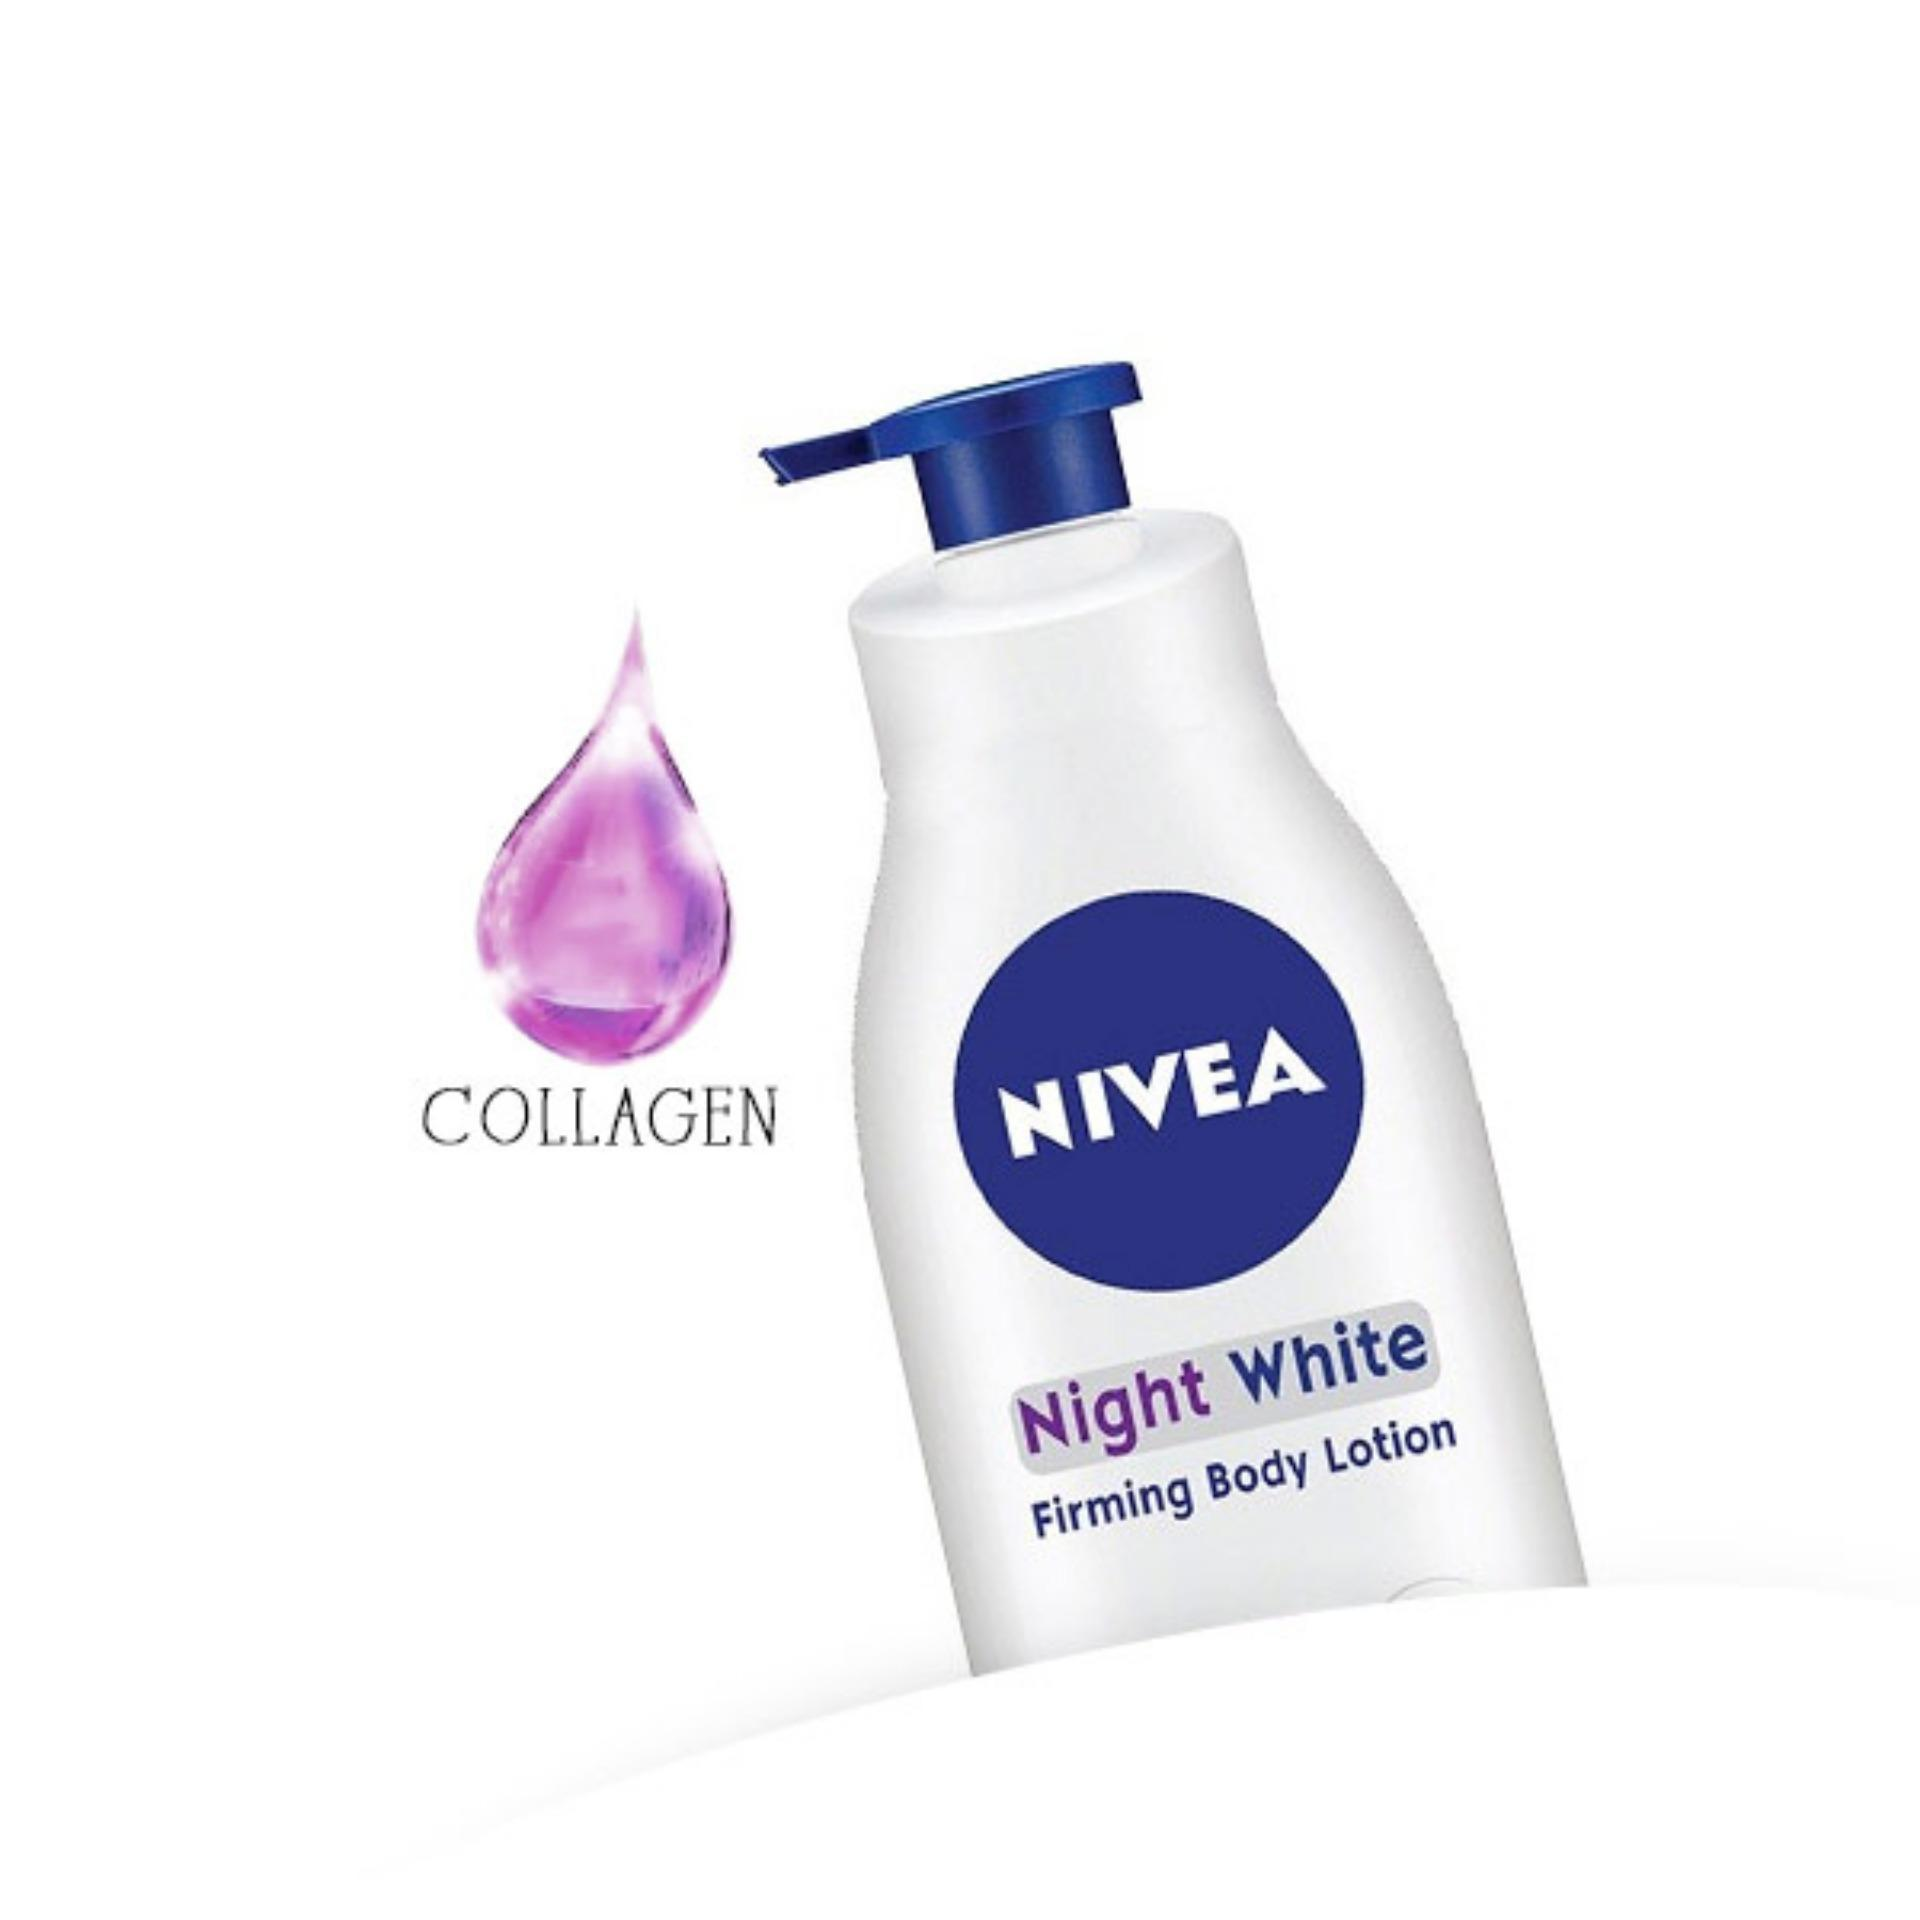 Nivea Night White Firming Body Lotion review